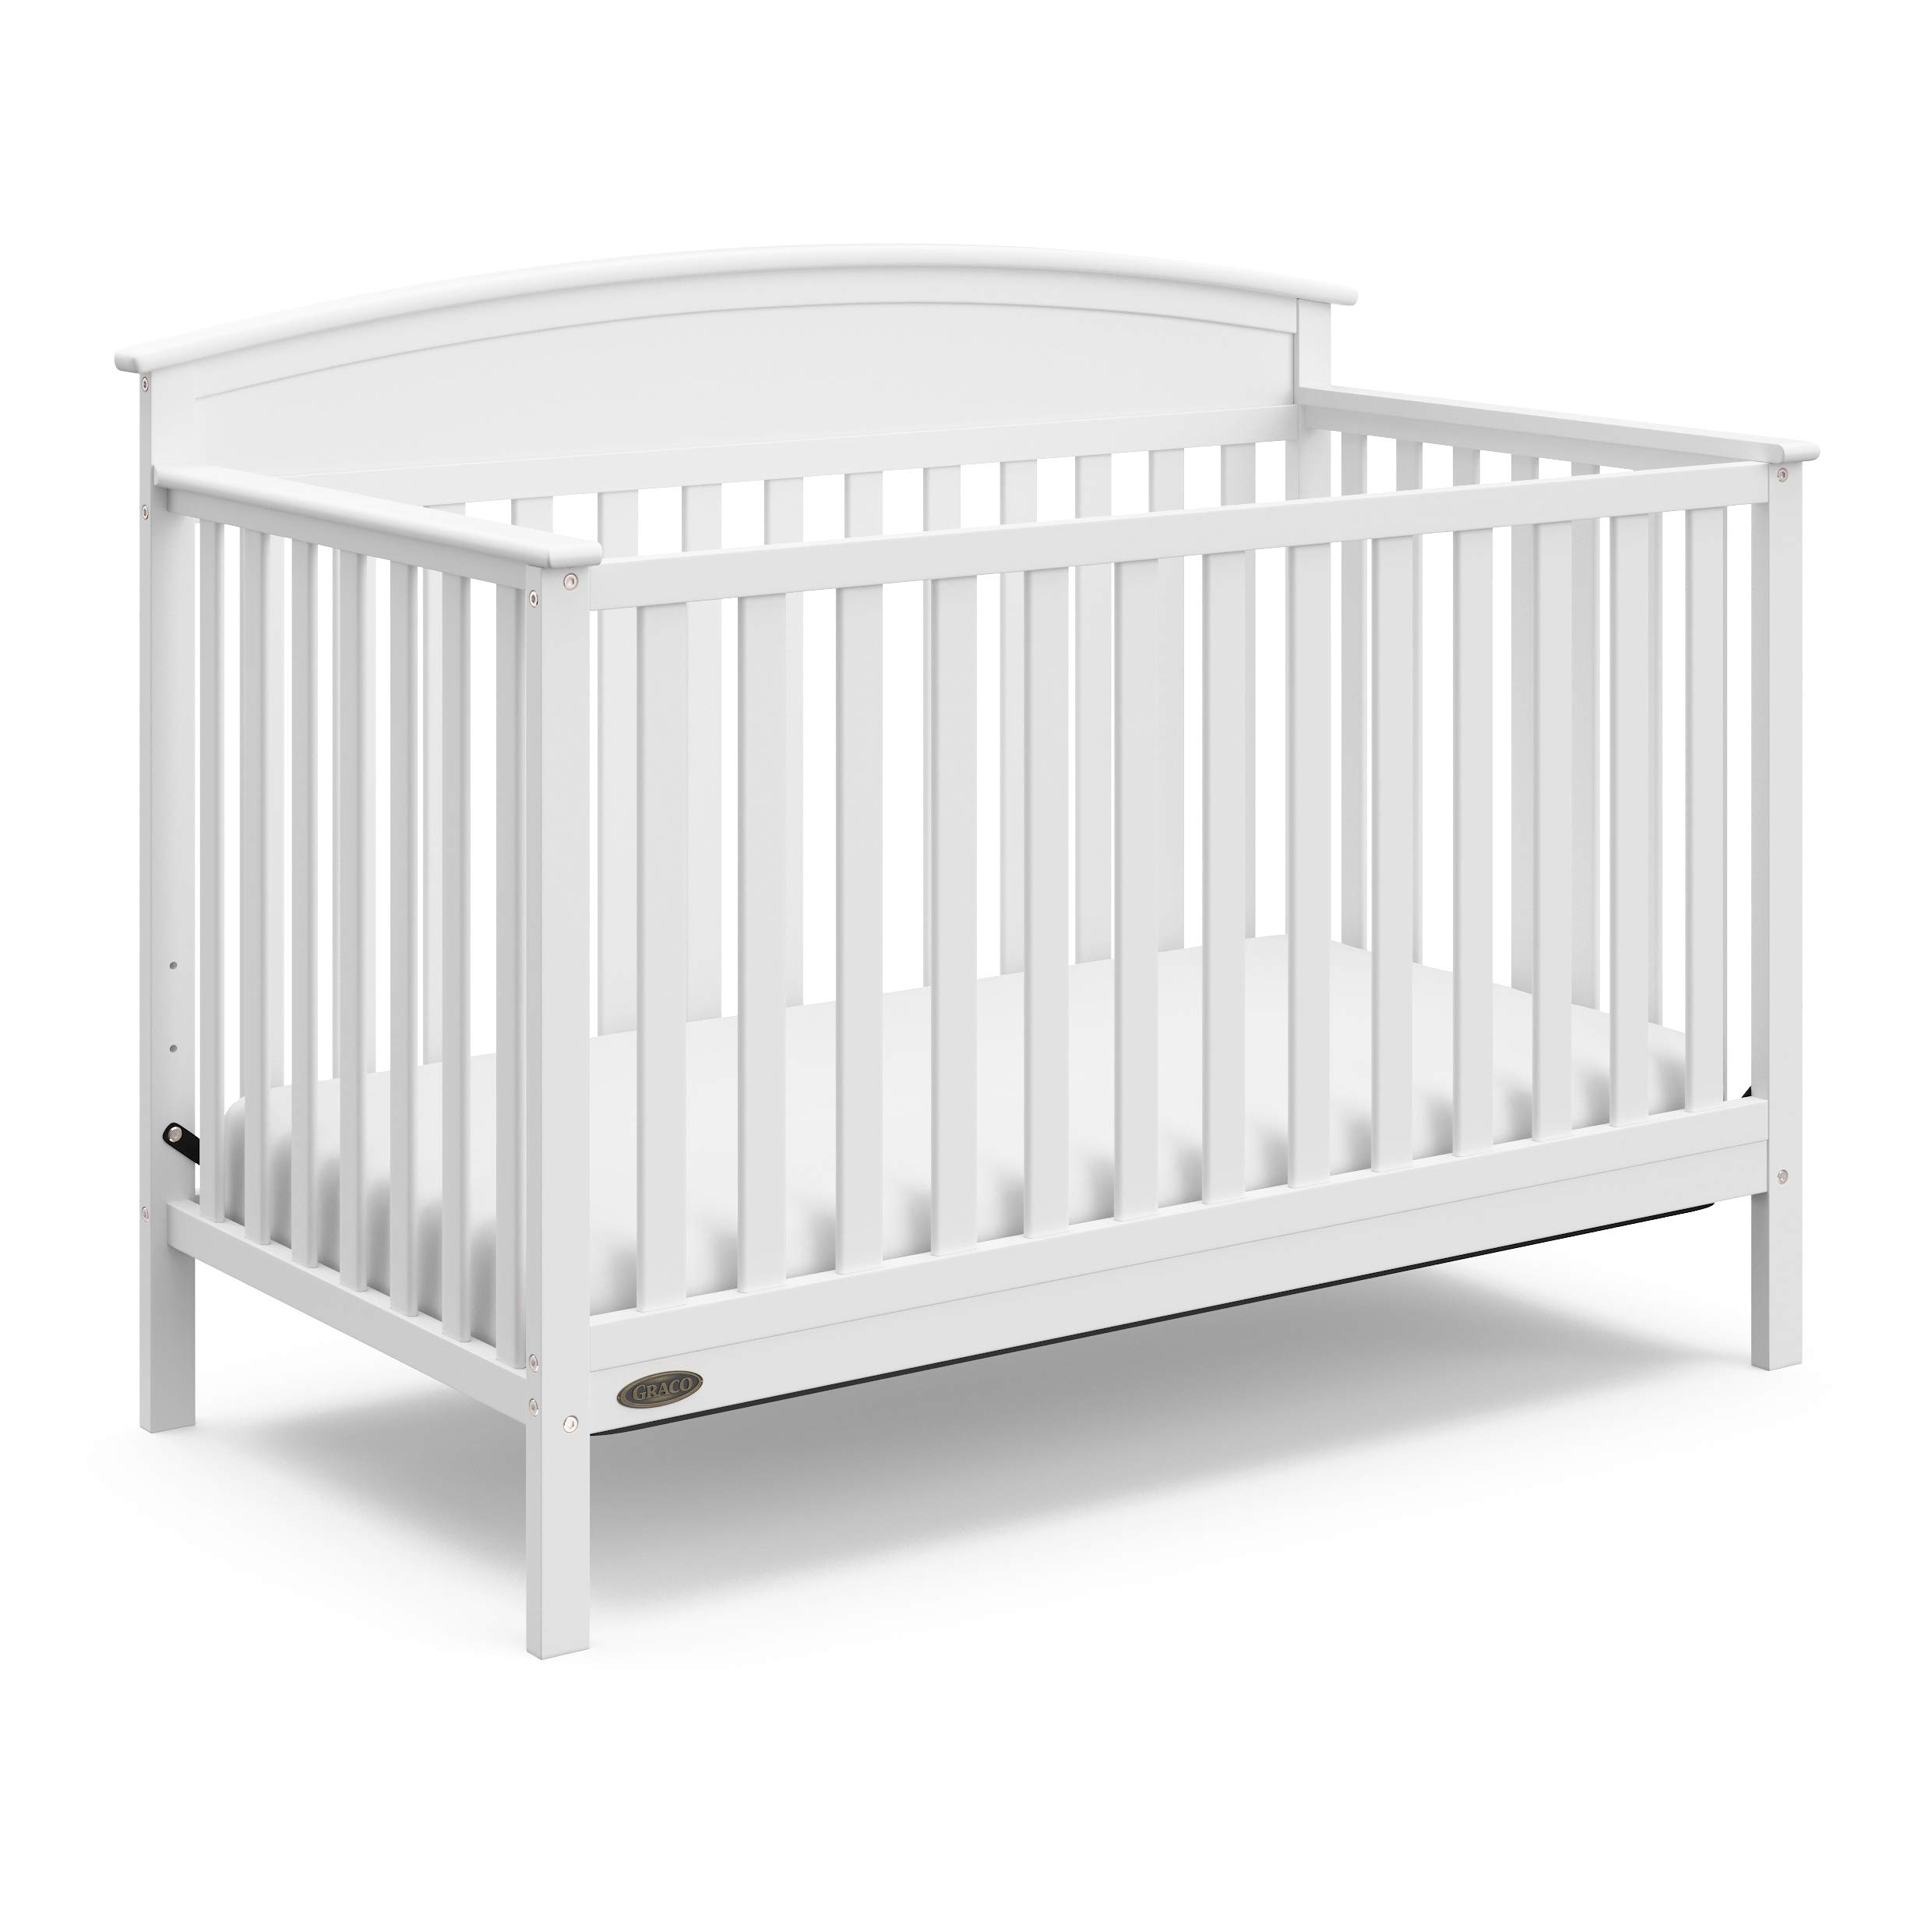 Graco Benton 4-in-1 Convertible Crib (White) - Easily Converts to Toddler Bed, Daybed or Full-Size Bed with Headboard, 3-Position Adjustable Mattress Support Base by Storkcraft